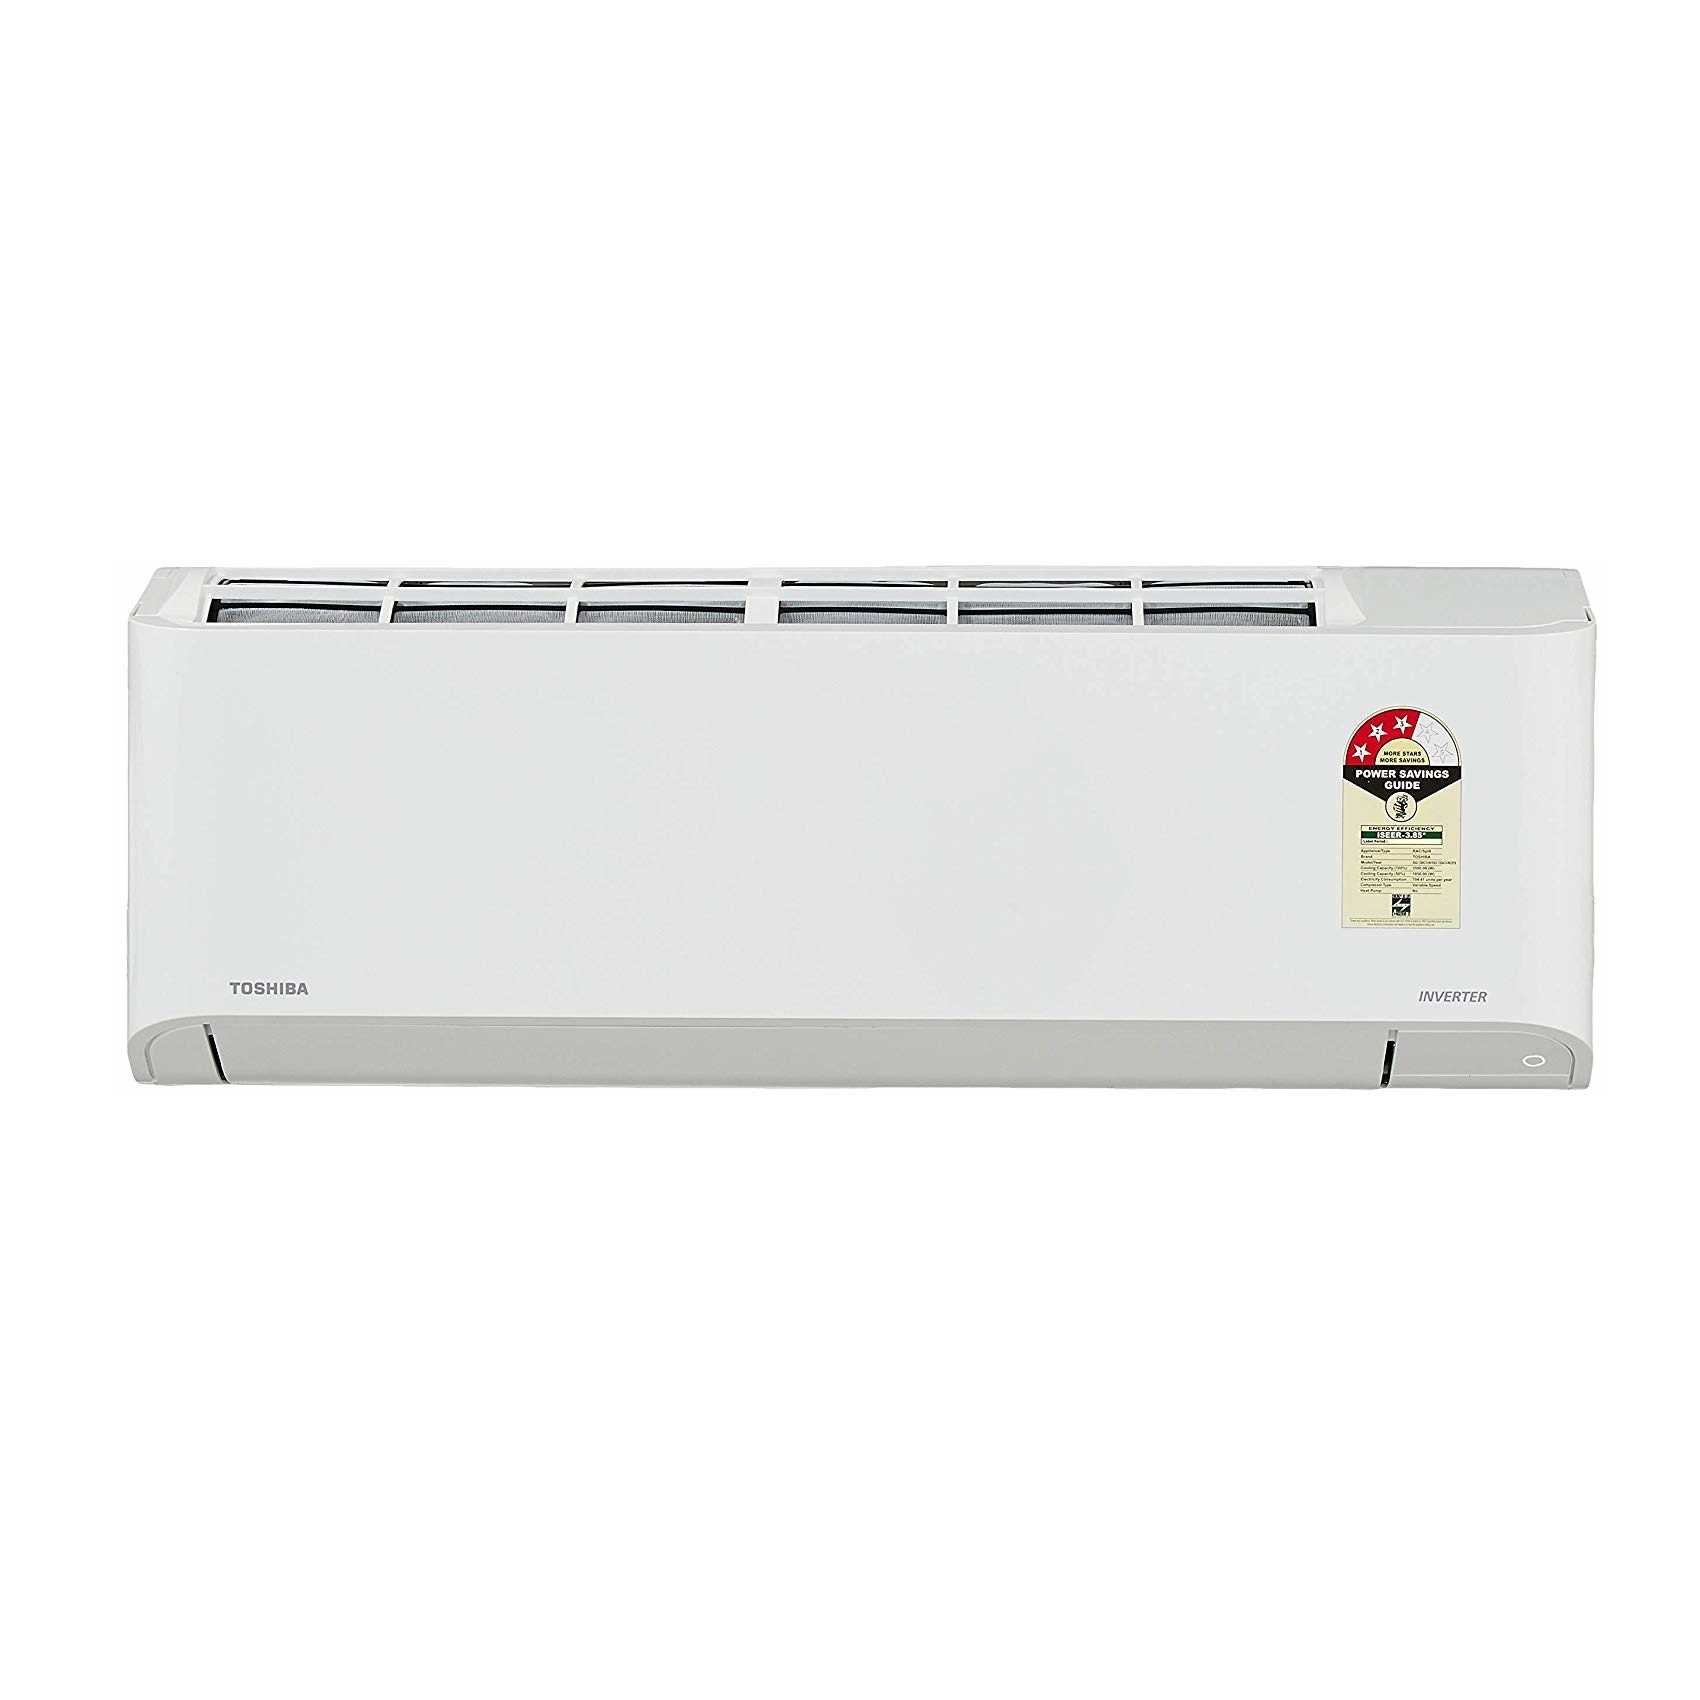 Toshiba RAS 13BKCV IN 1 Ton 3 Star Inverter Split AC